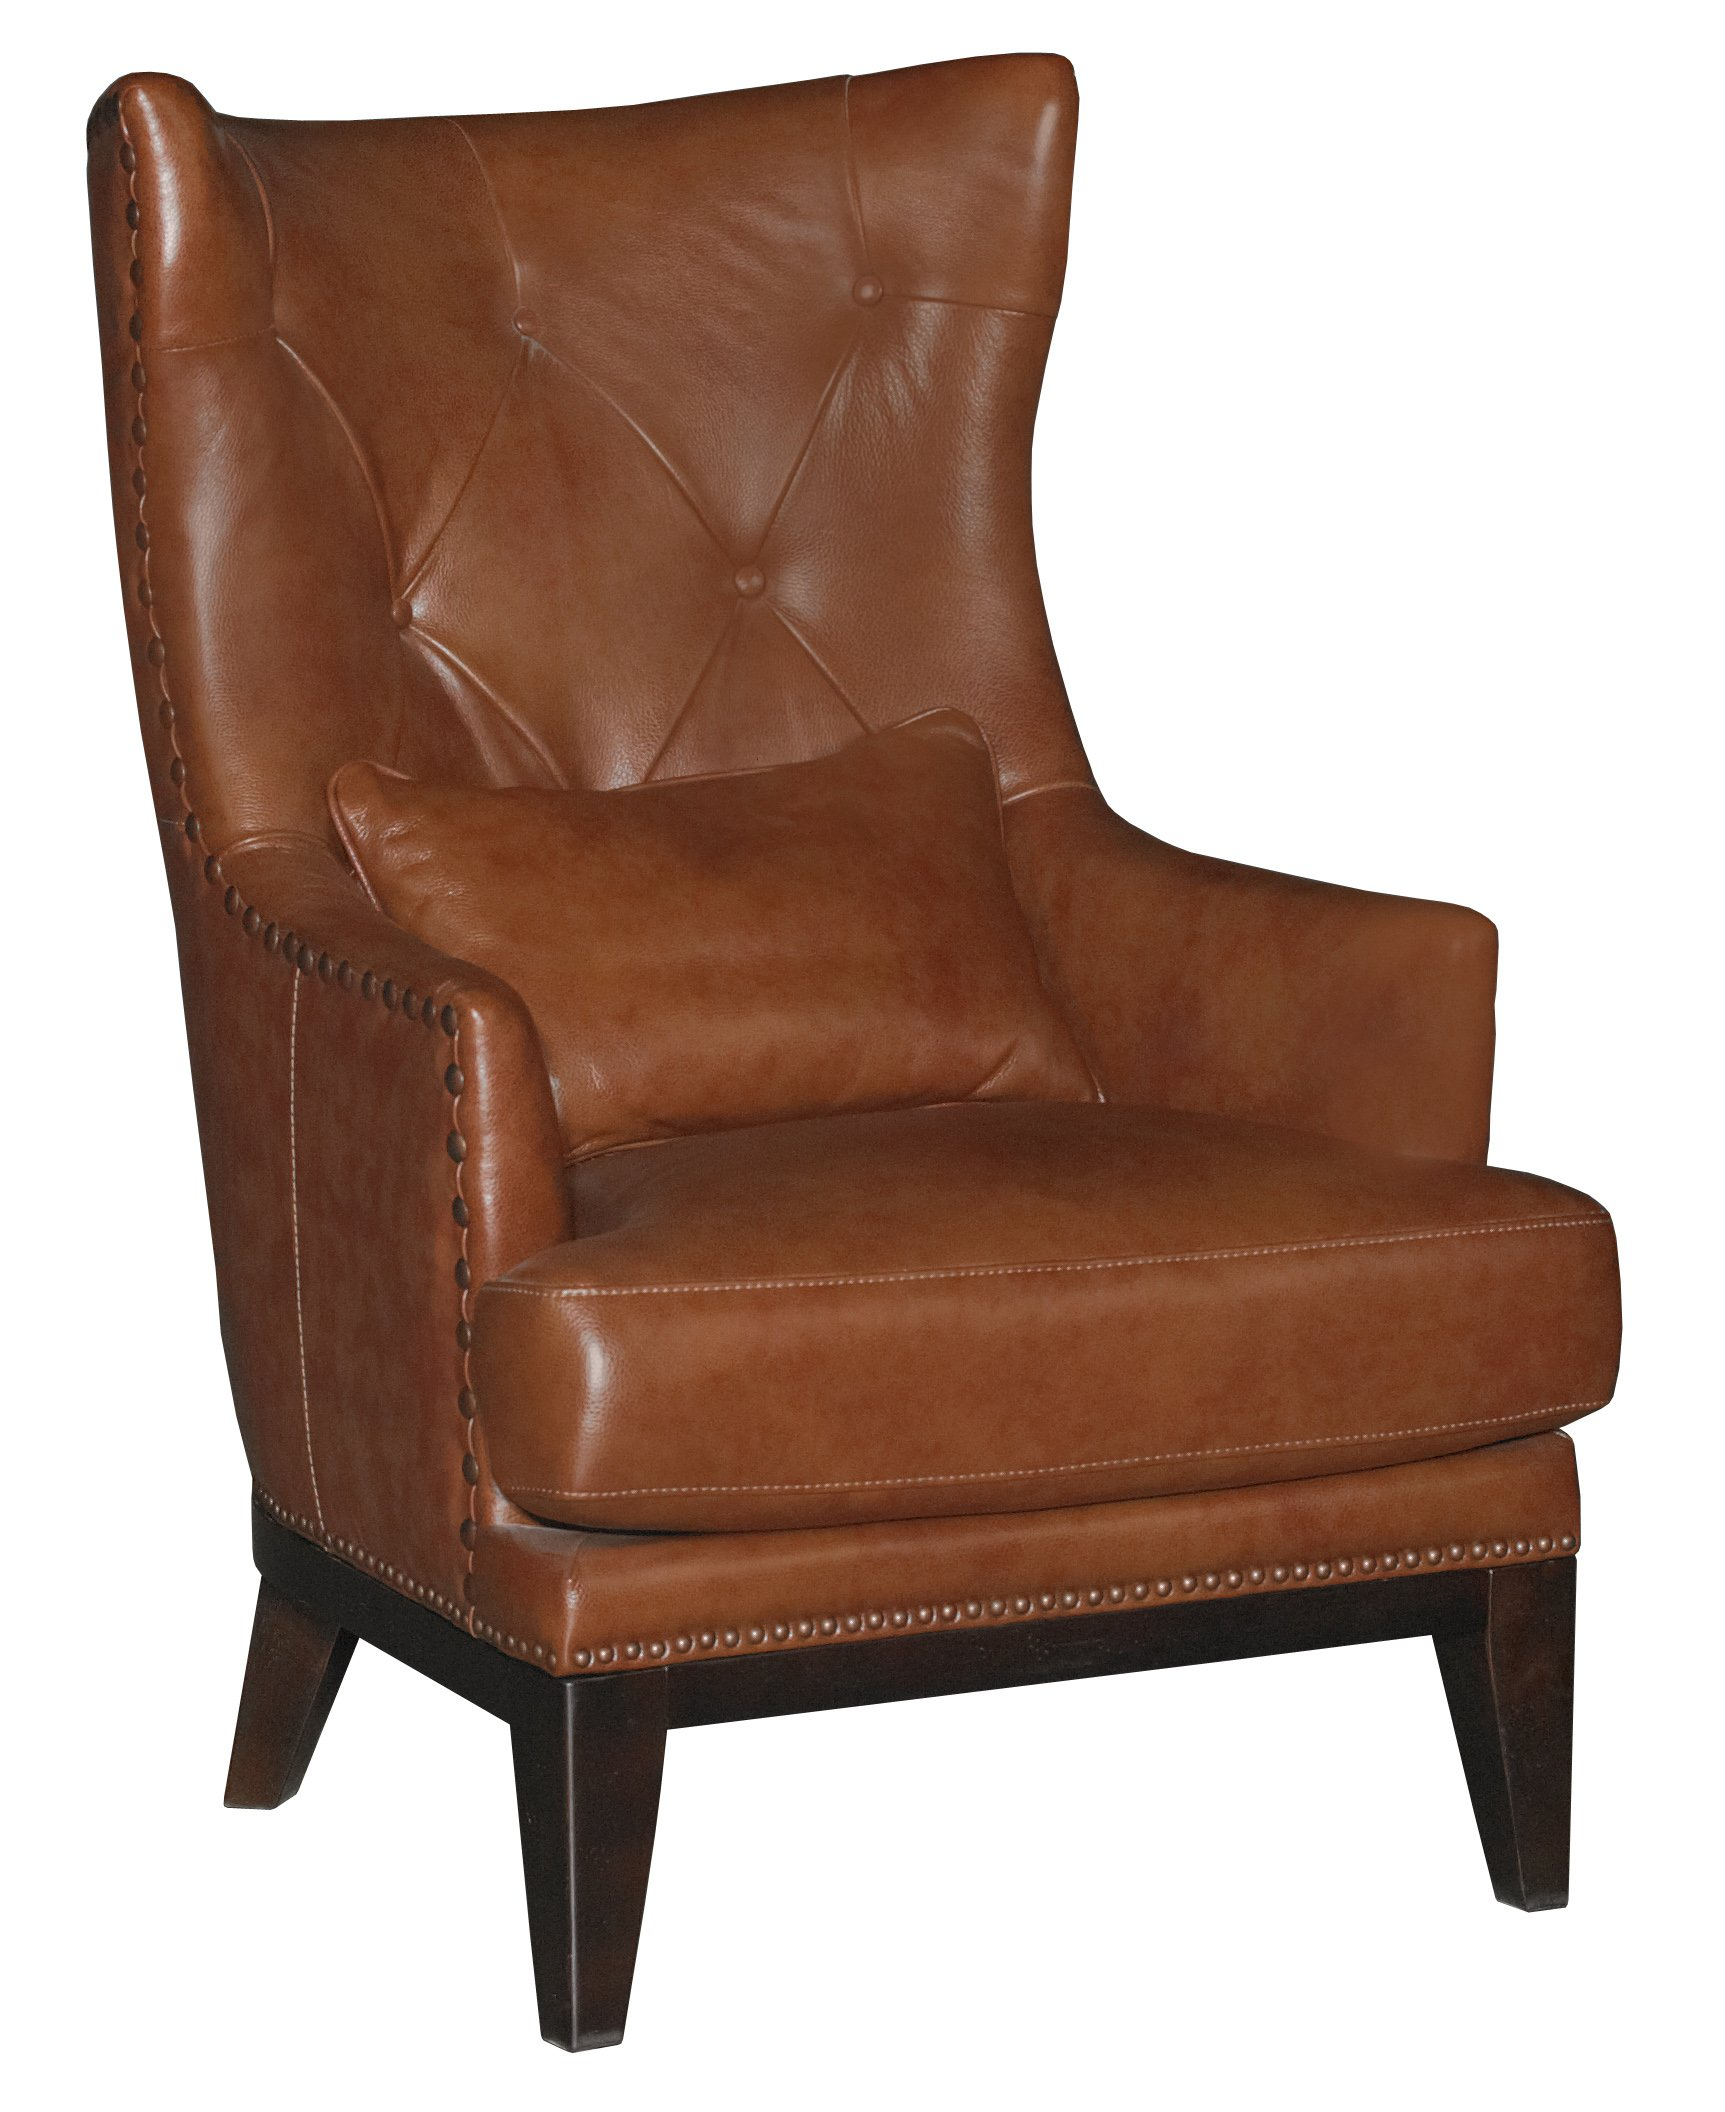 Chestnut Brown Leather Match Accent Chair Ottoman